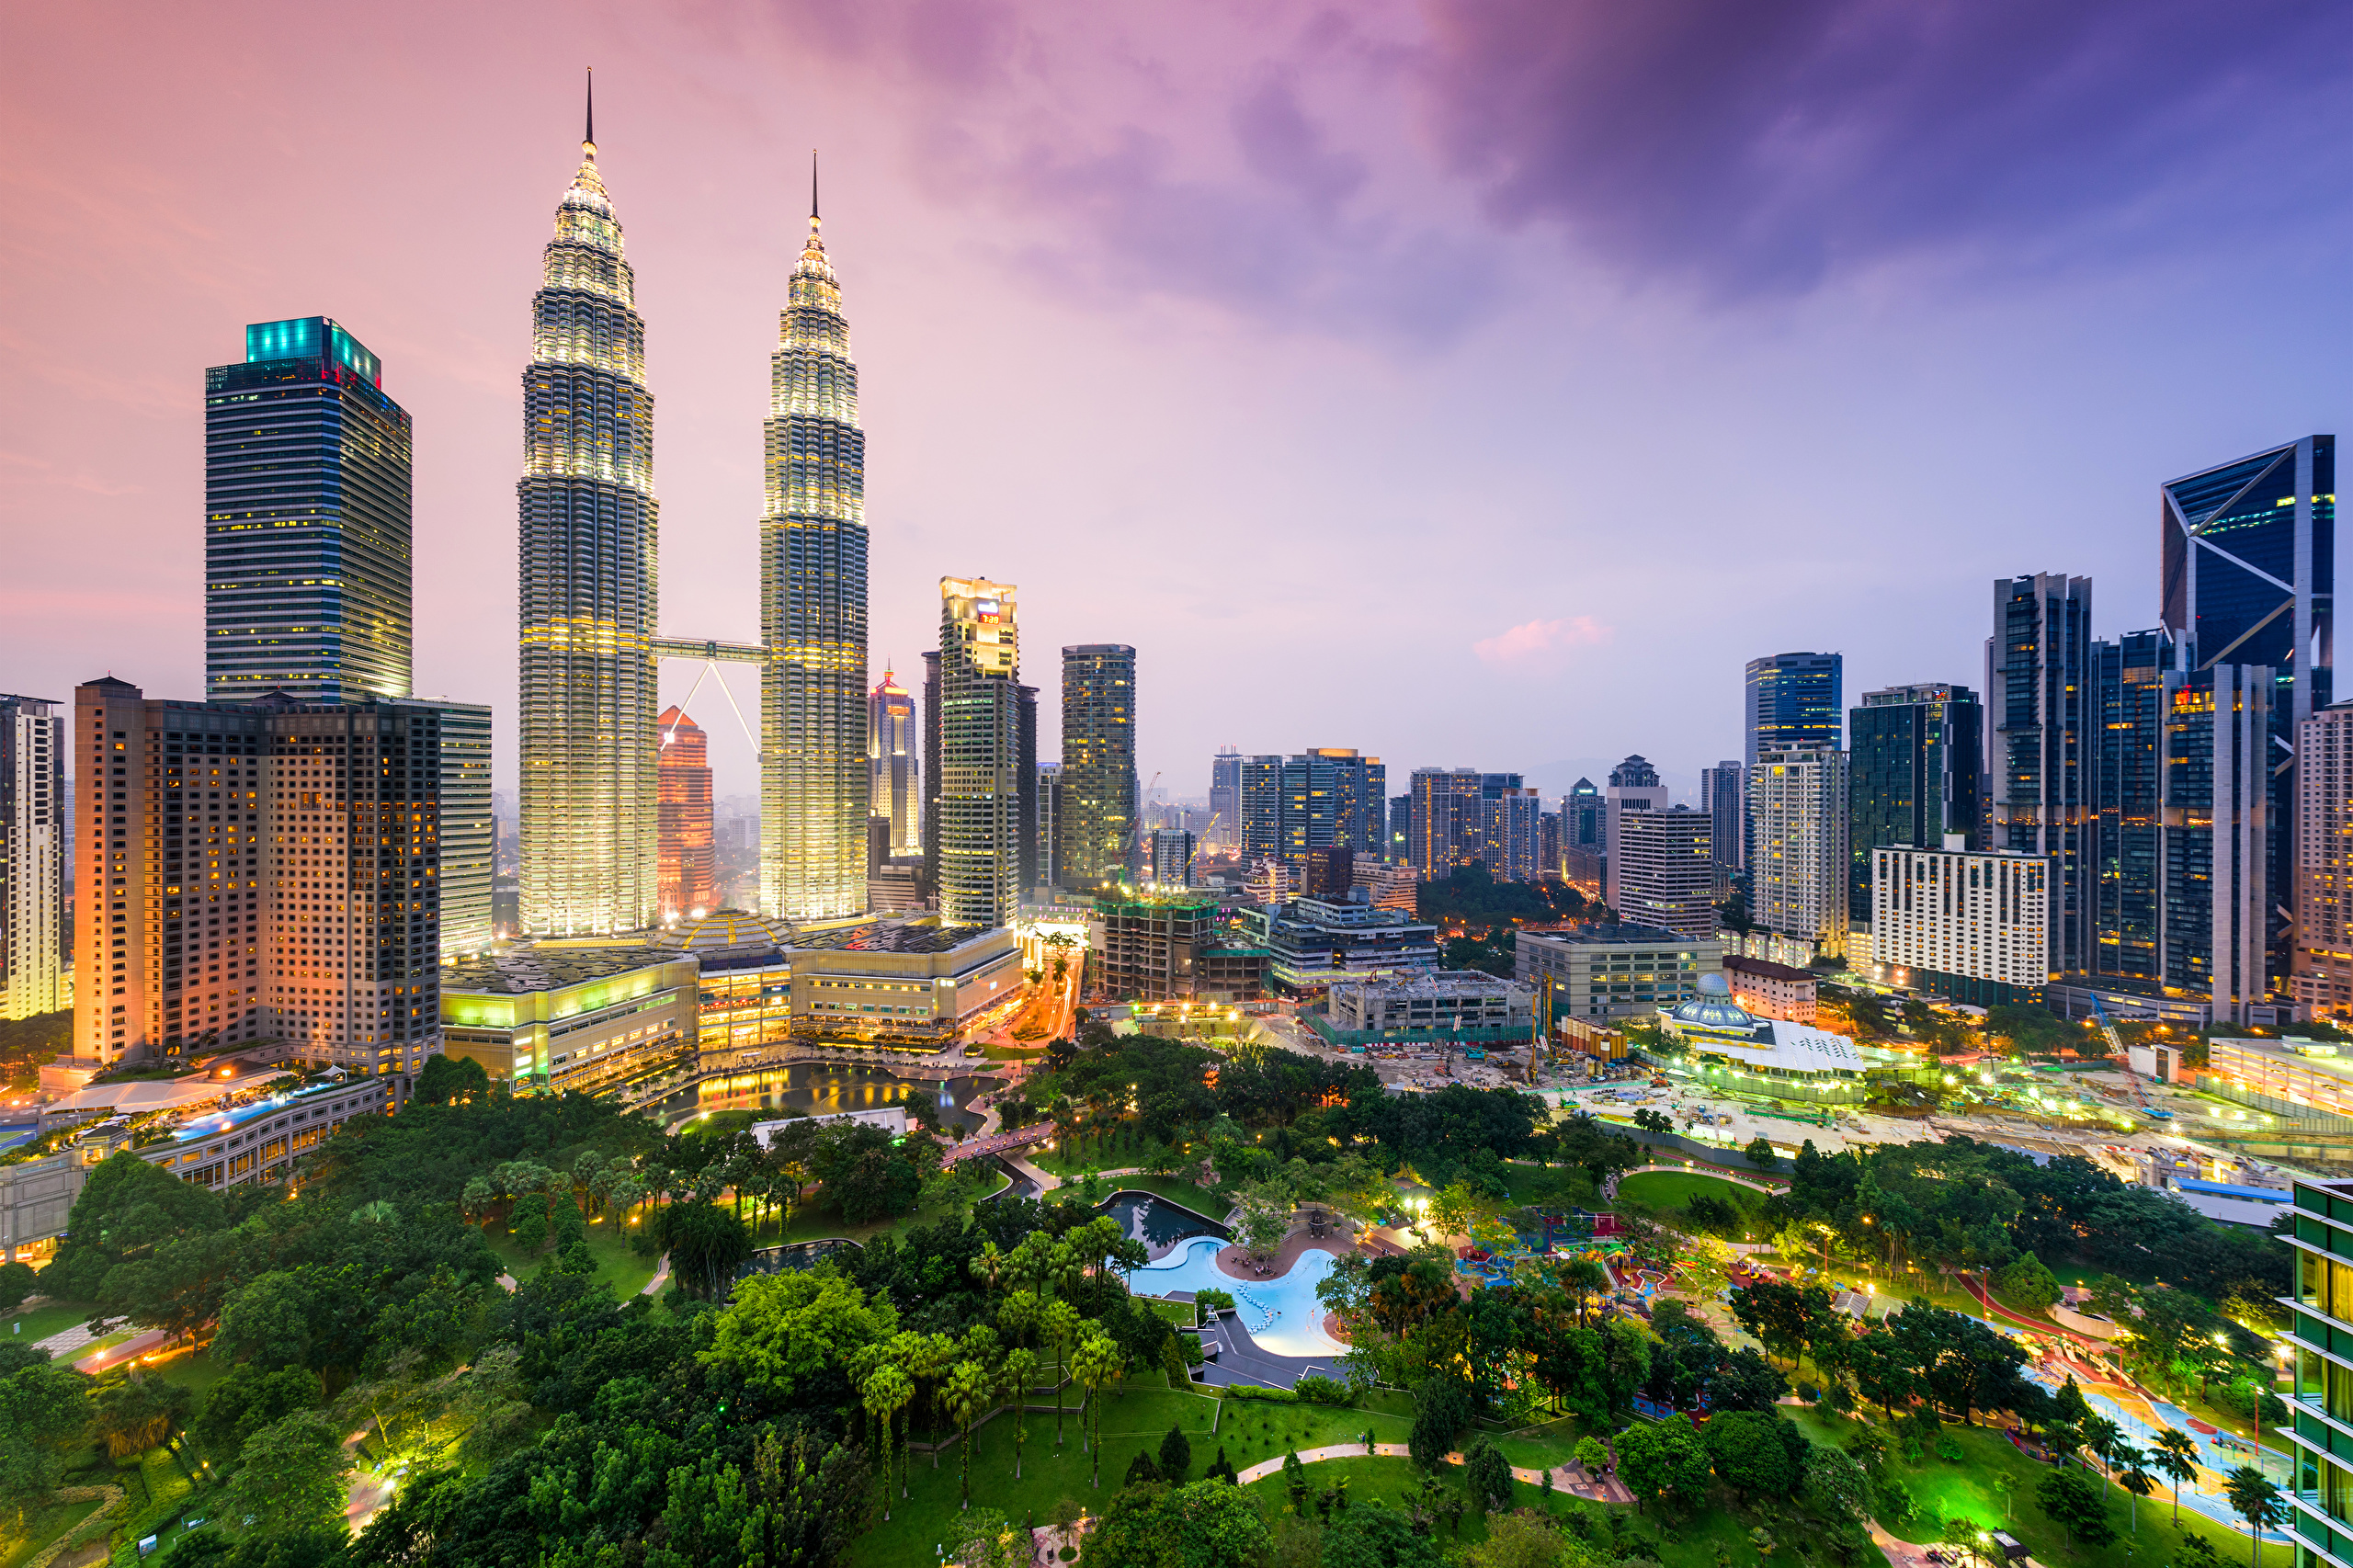 background of klcc